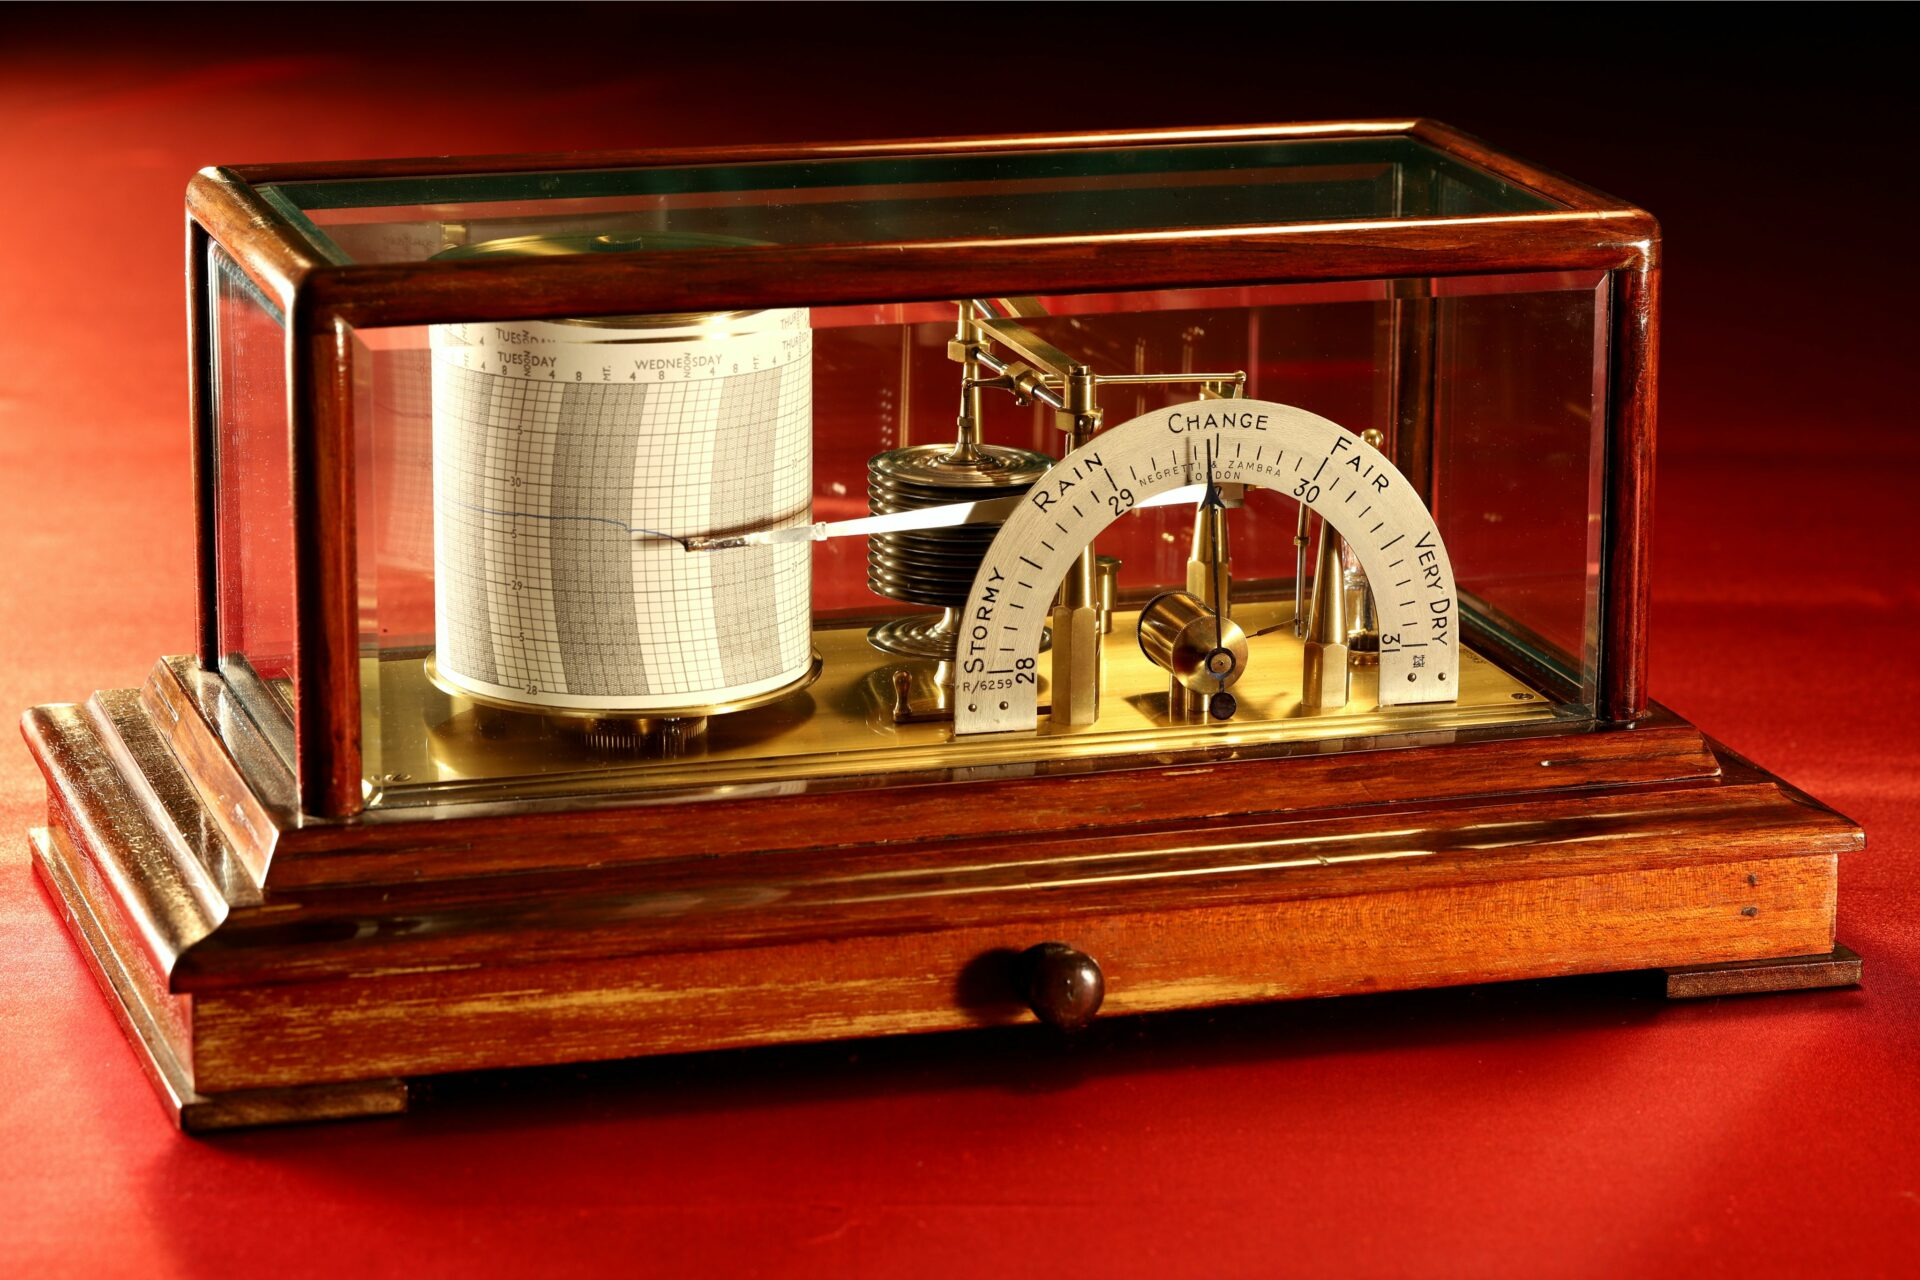 Image of Negretti & Zambra Regent Barograph No R6259 c1929 with case lid in place taken from left centre